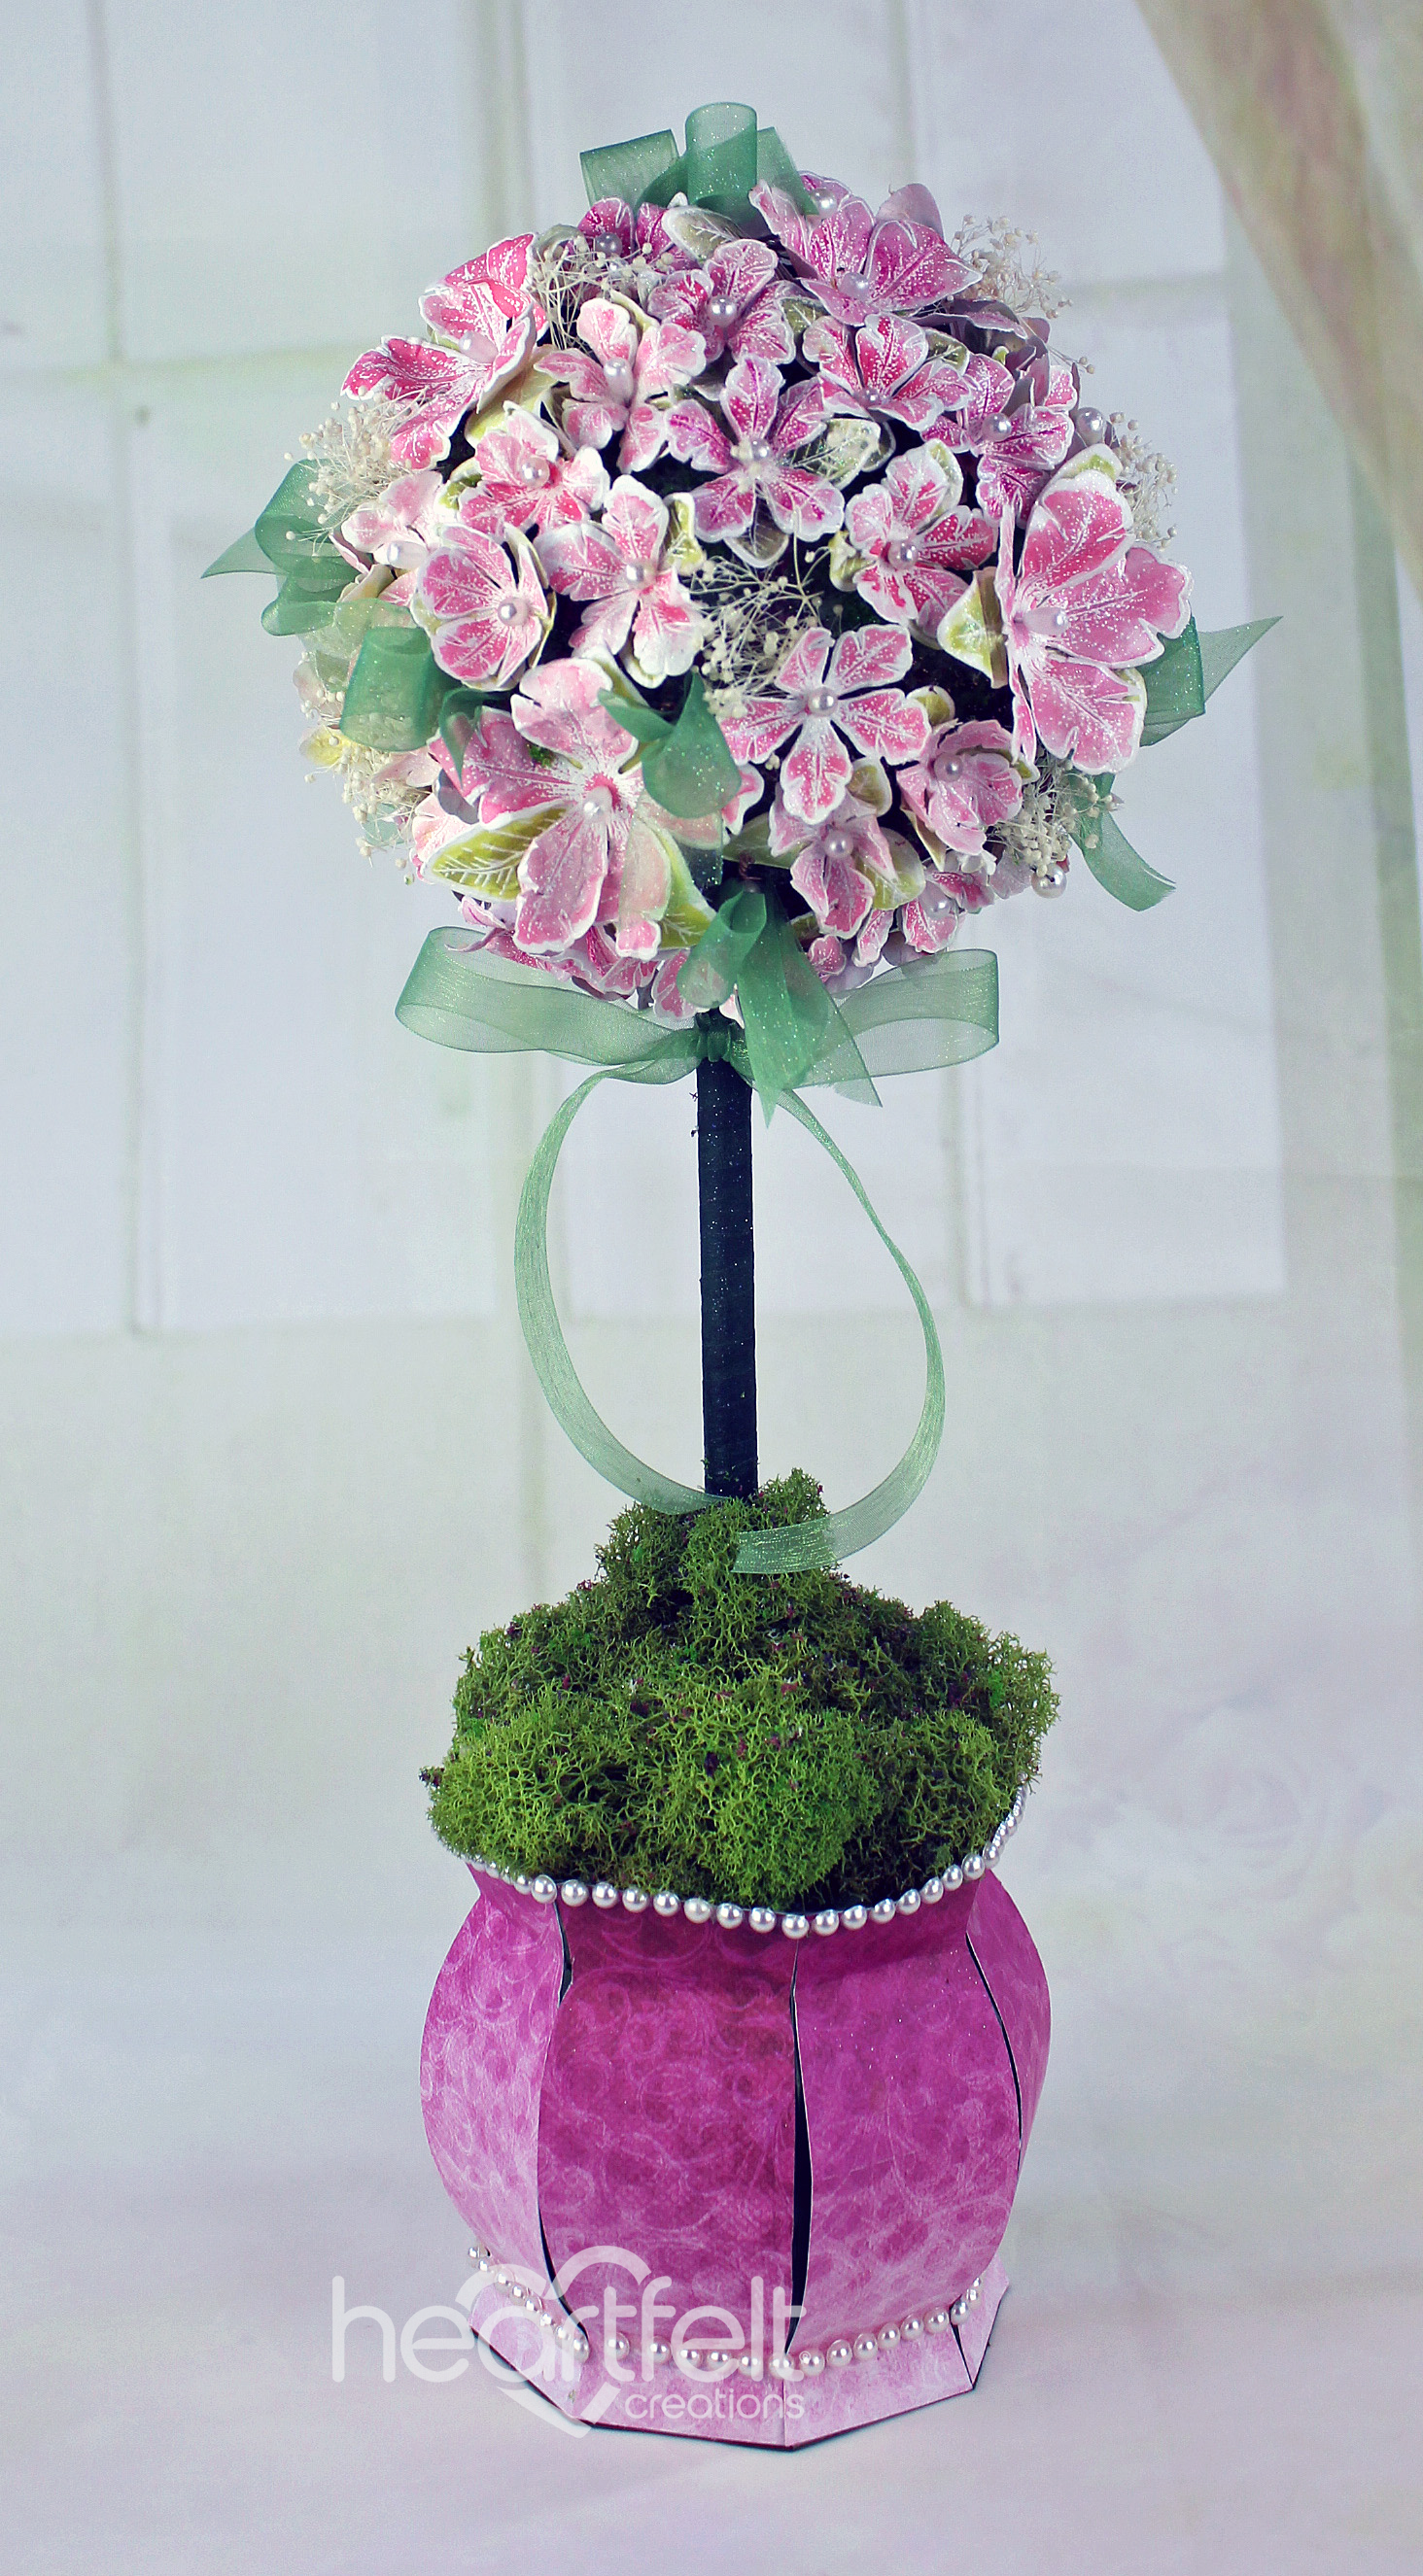 Gallery petunia floral topiary heartfelt creations see a close up view of this topiary create the urn from thank you for the music svg file here i used paper from the classic petunia paper collection mightylinksfo